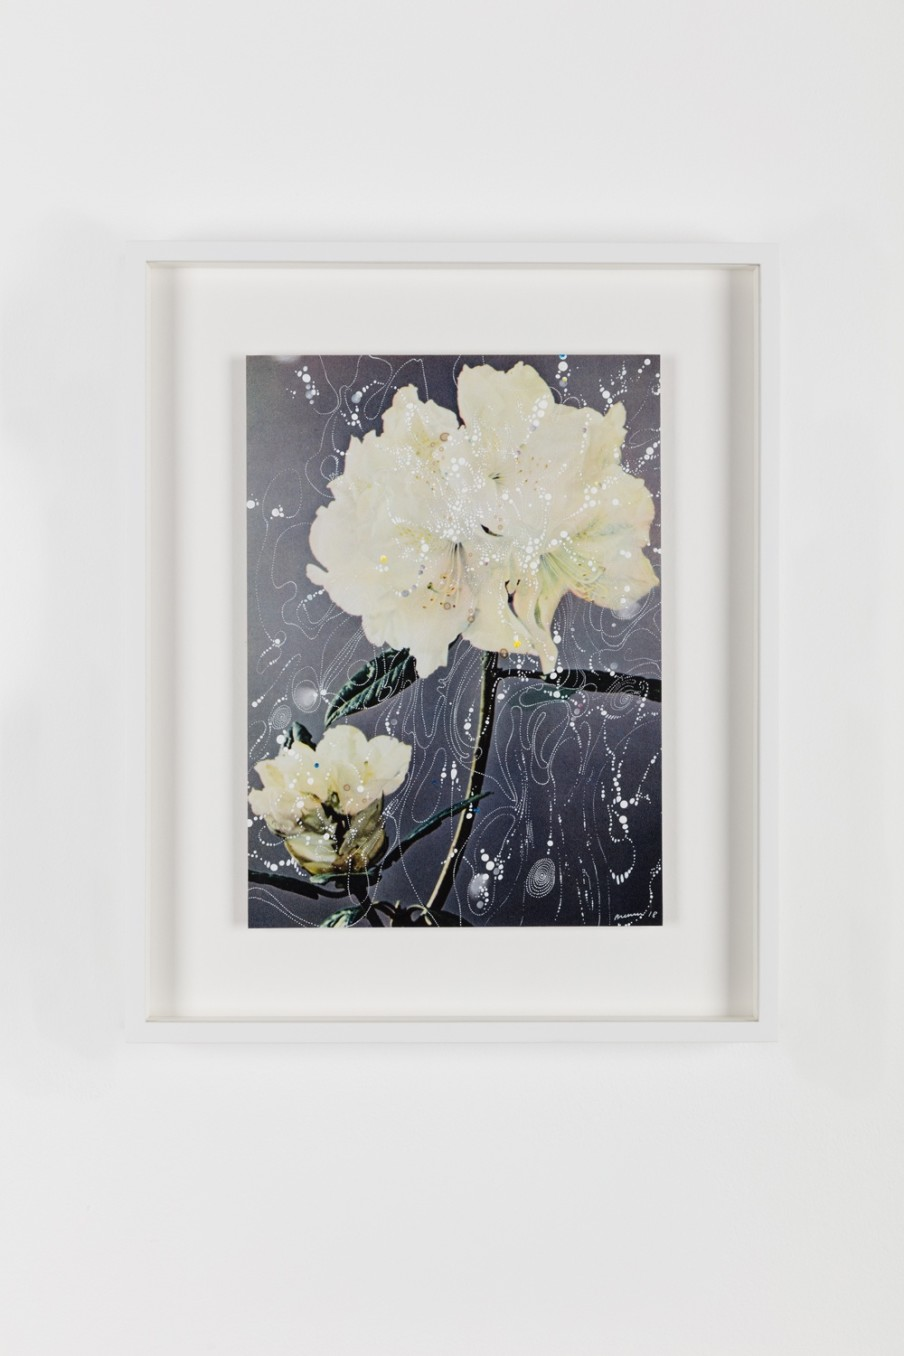 Sebastiaan Bremer, Rhododendron Hybrid Mrs Lindsay Smith Love, 2018, Archival inkjet pigment print on resin coated paper with hand additions in acrylic, photo retouch dye, and pigment pen, 27.9 x 20.3 cm 11 x 8 in, Framed: 38.1 x 31.2 x 3.7 cm, 15 x 12 1/